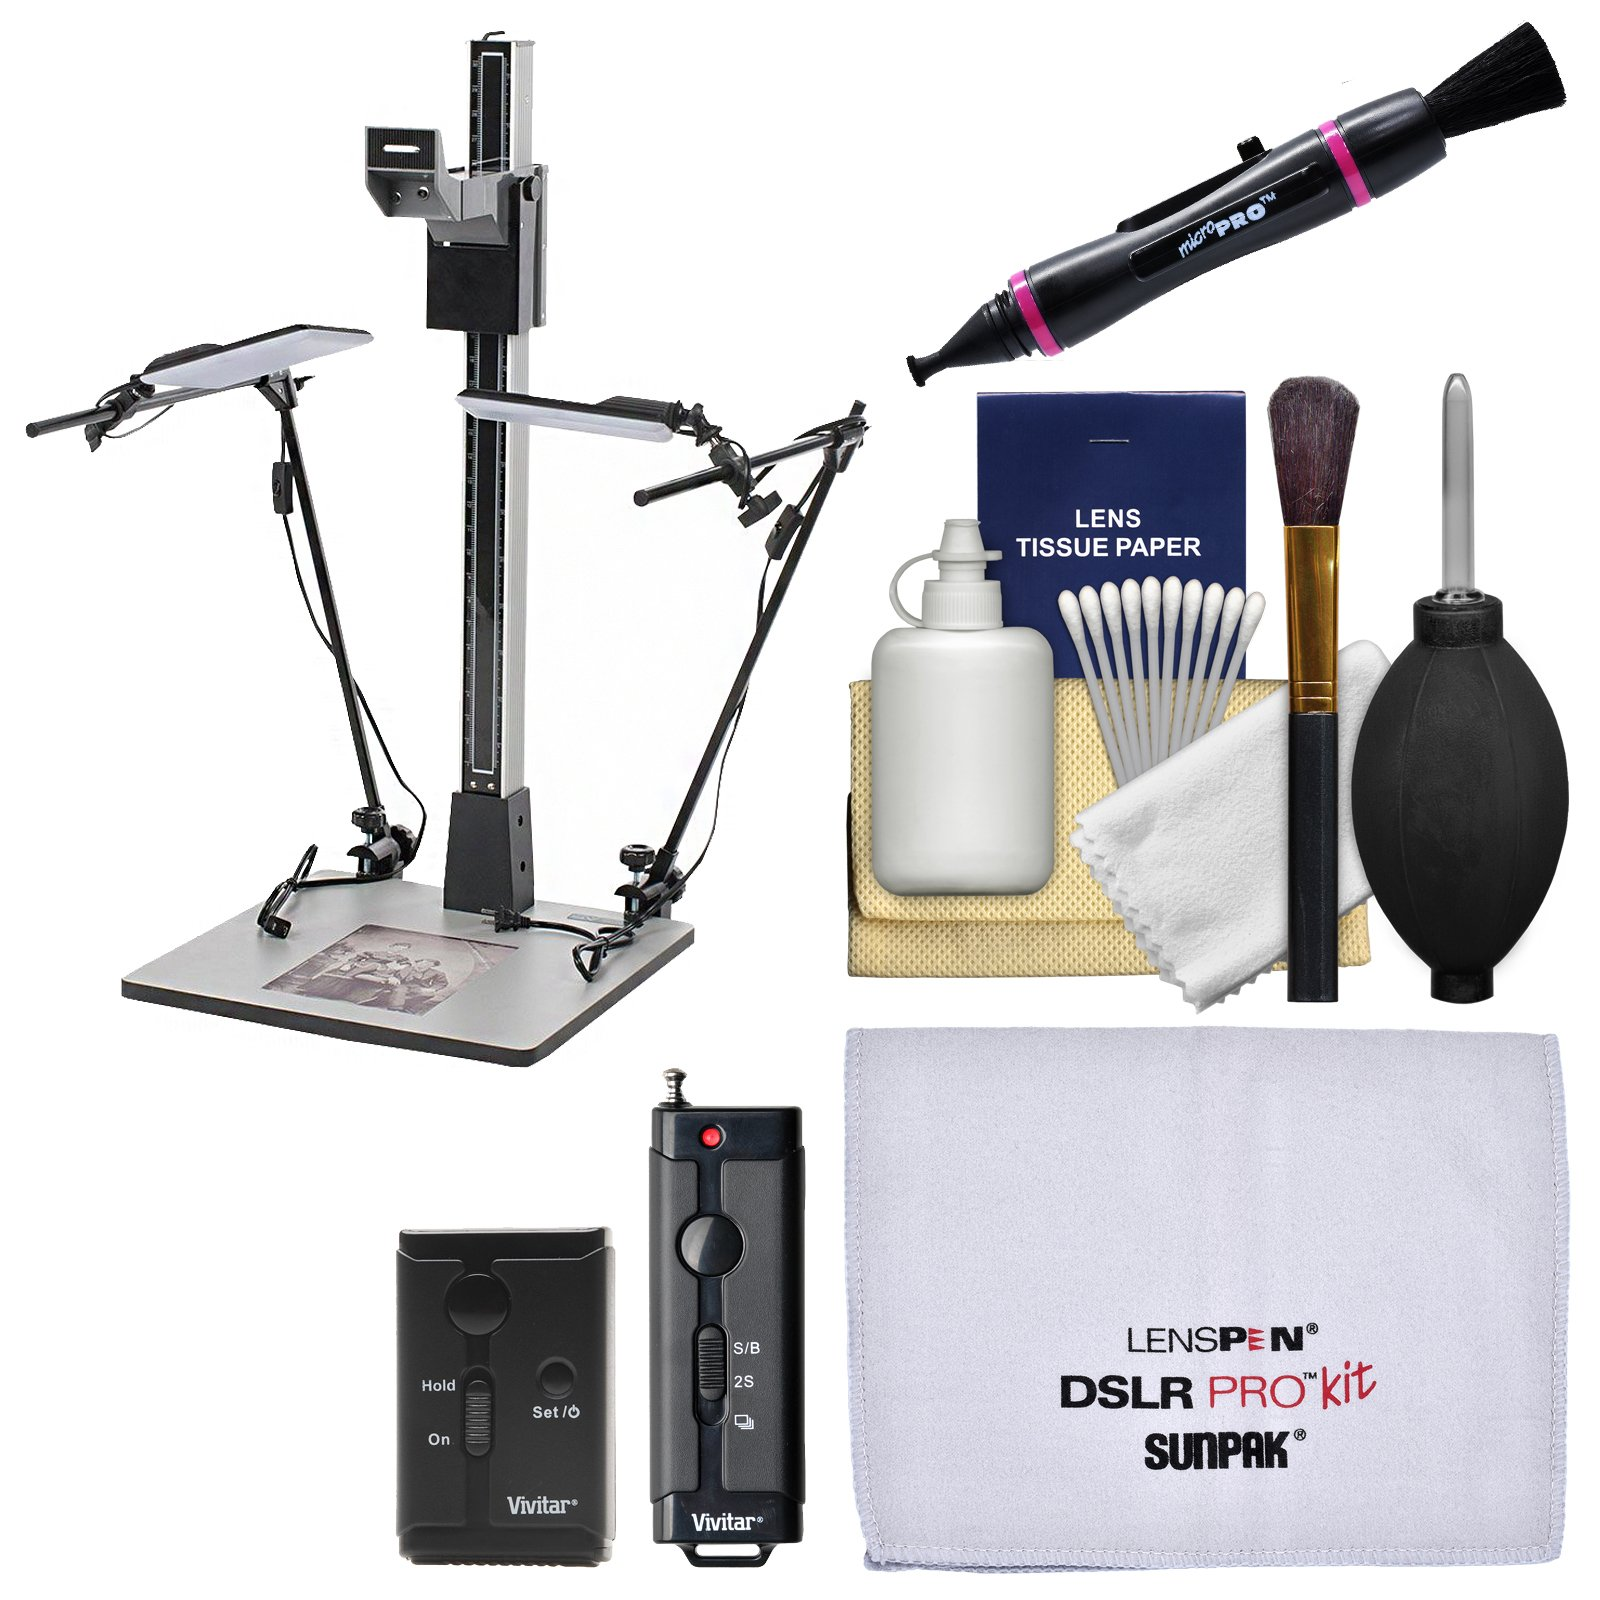 Smith-Victor 36'' CS36K Pro-Duty Copy Stand with 2 LED Lights & Adjustable Arms Kit with Shutter Release Remote + Cleaning Kit